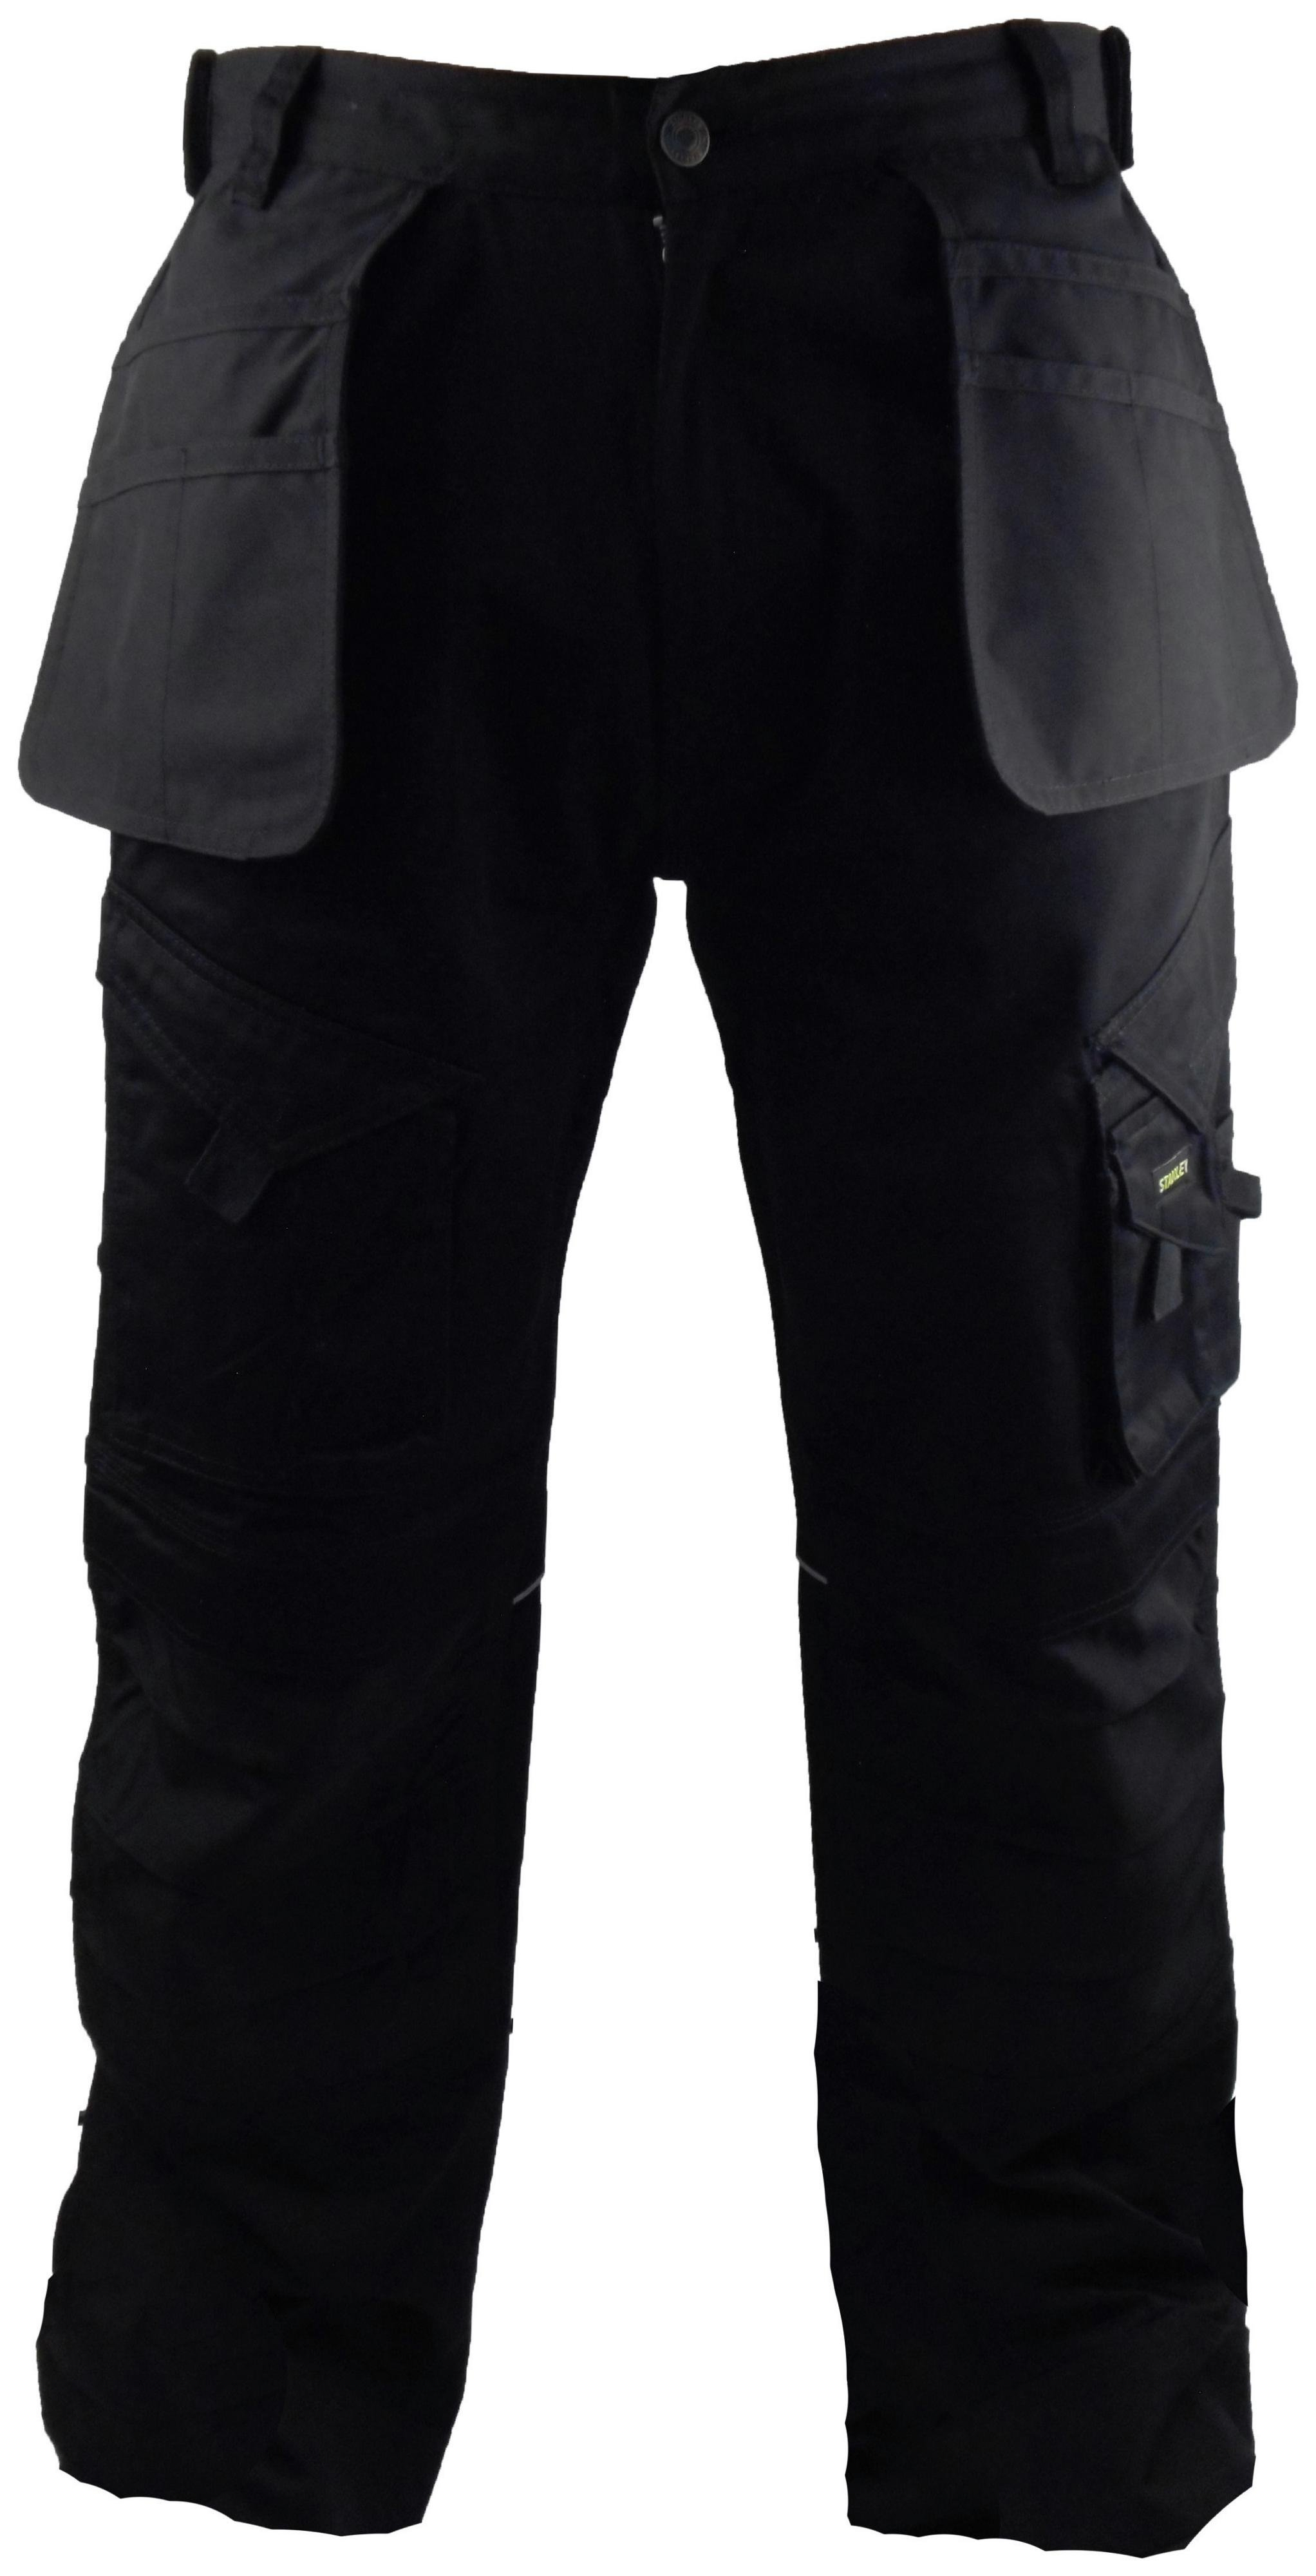 Image of Stanley Colorado Men's Black Trouser - 33 to 40 inch.